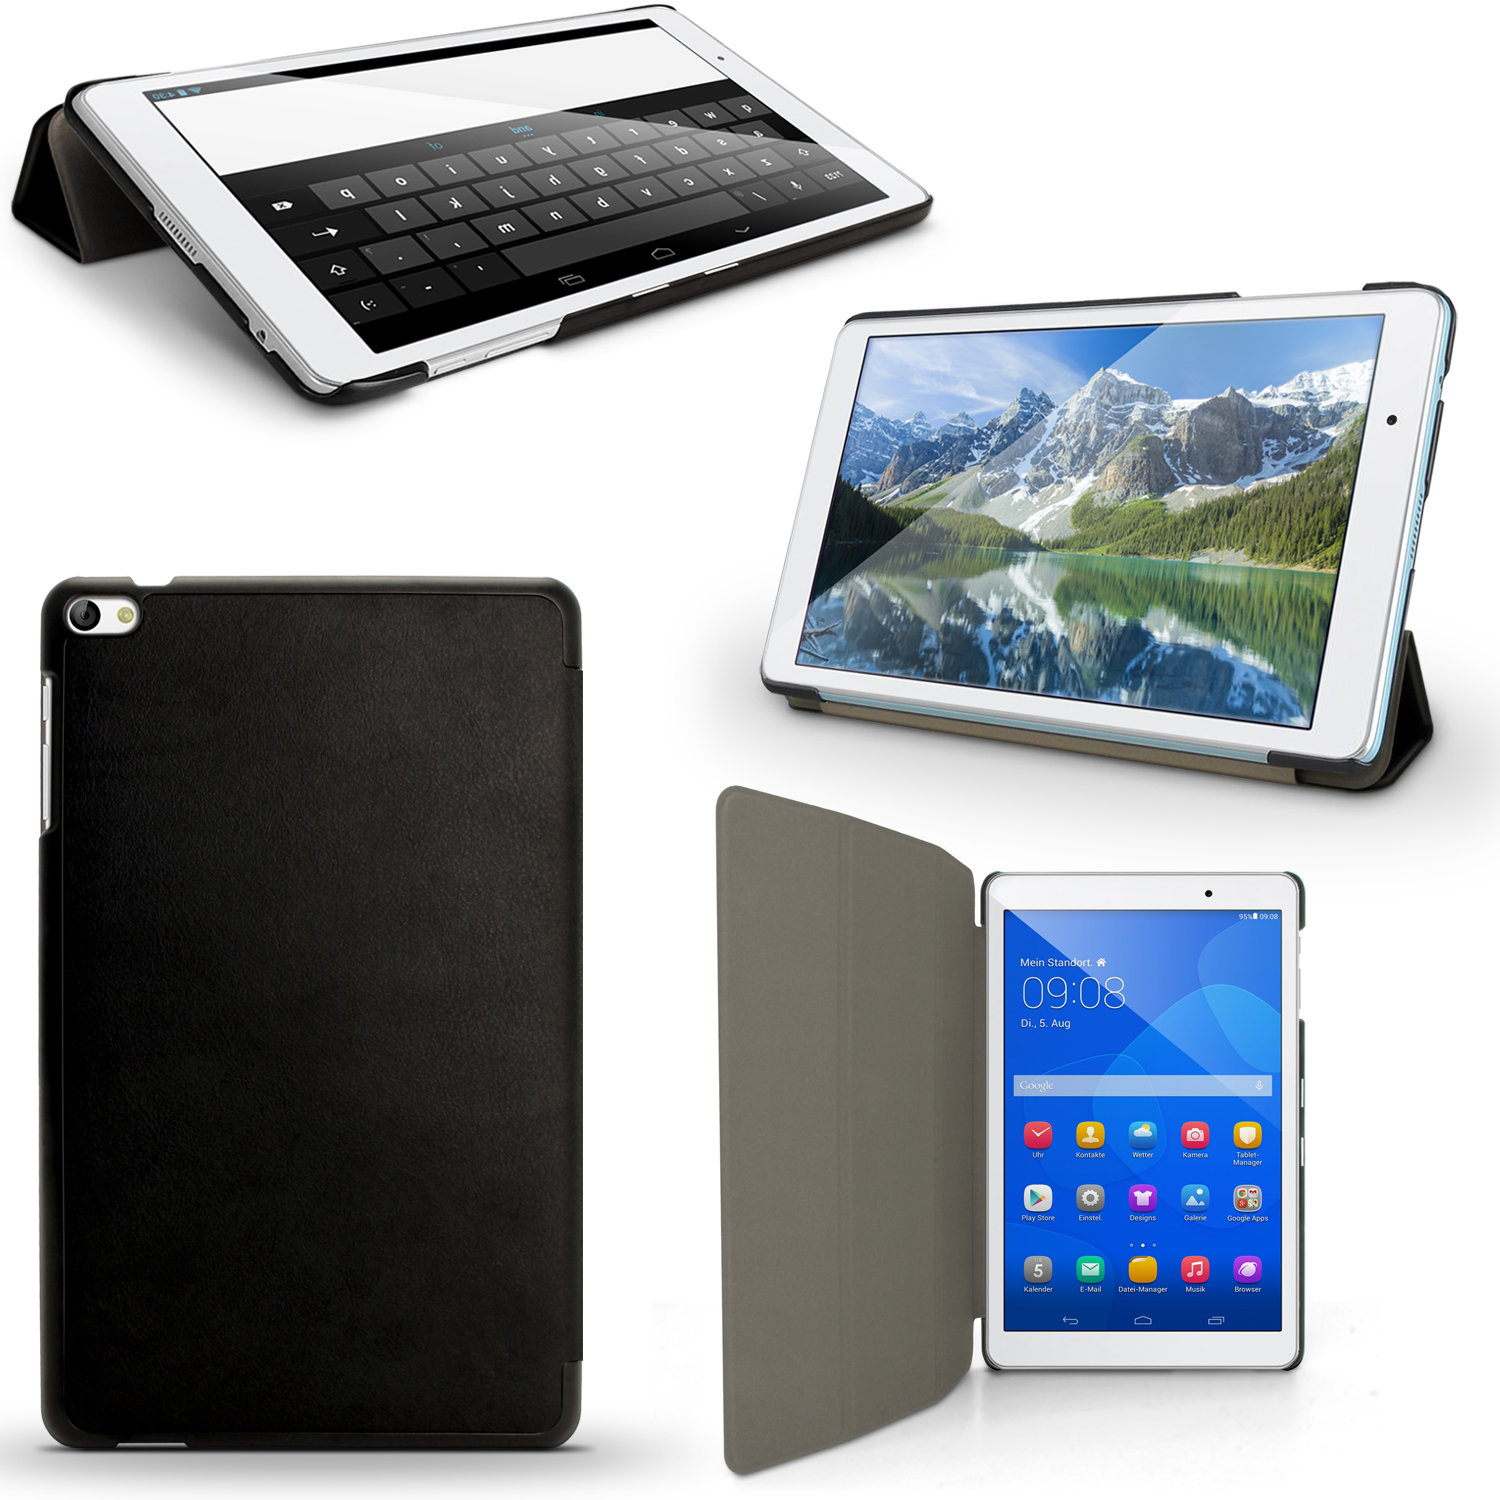 iGadgitz PU Leather Smart Cover Case for Huawei MediaPad T2 10.0 PRO with Stand + Sleep Wake + Screen Protector